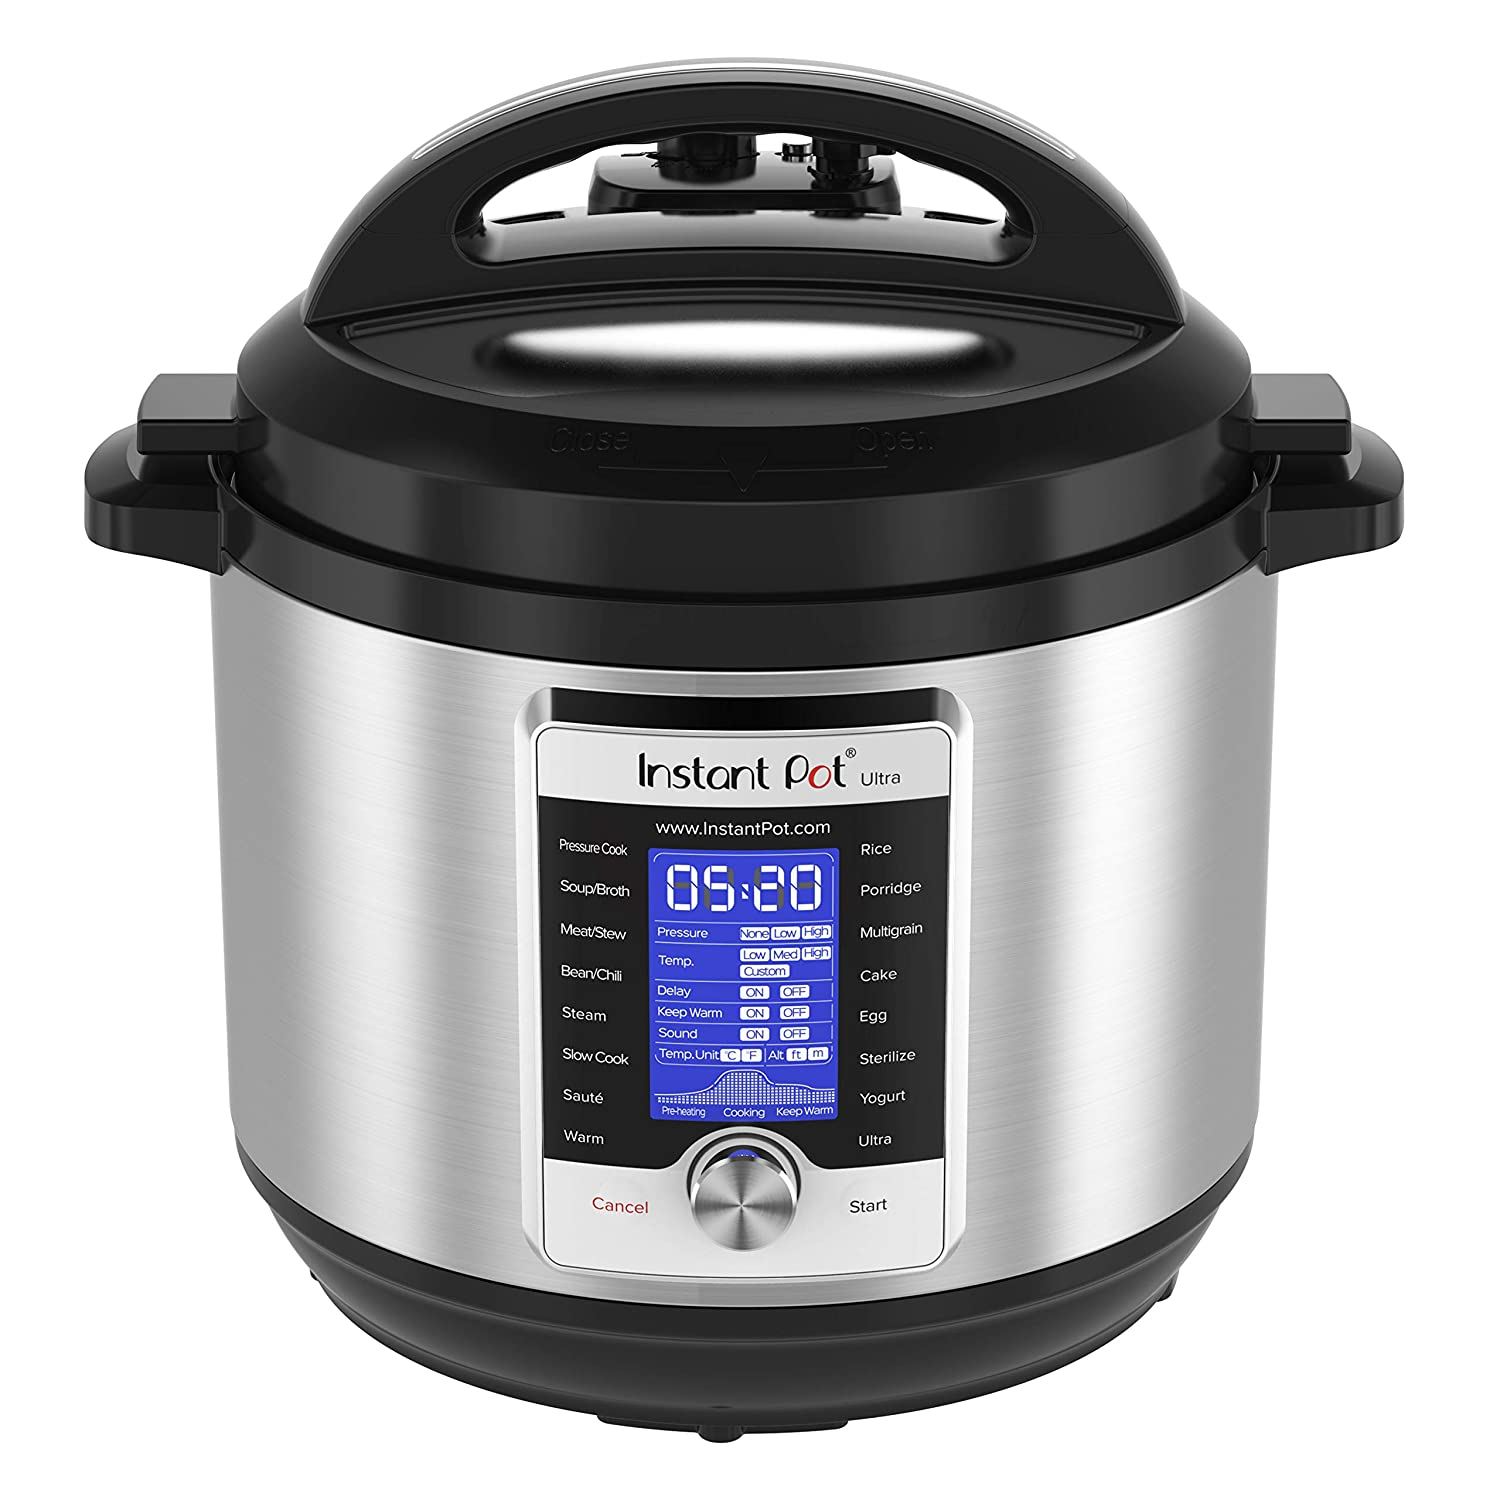 Instant Pot Ultra 8 Qt 10-in-1 Multi- Use Programmable Pressure Cooker, Slow Cooker, Rice Cooker, Yogurt Maker, Cake Maker, Egg Cooker, Saut , Steamer, Warmer, and Sterilizer